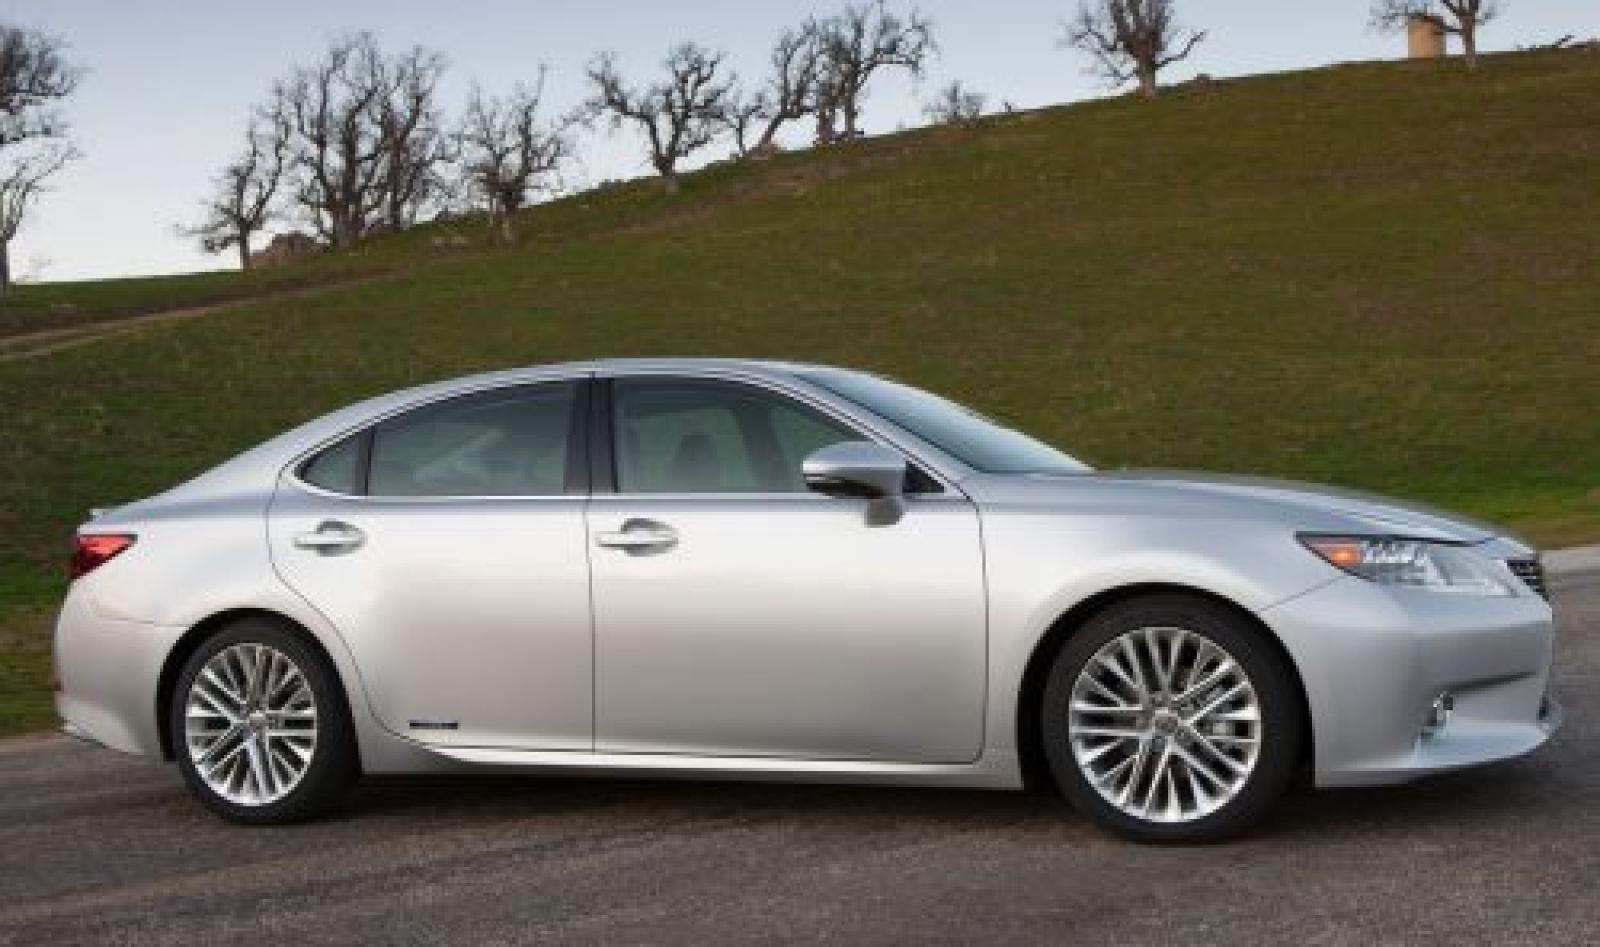 2015 Lexus ES 300h Information And Photos ZombieDrive